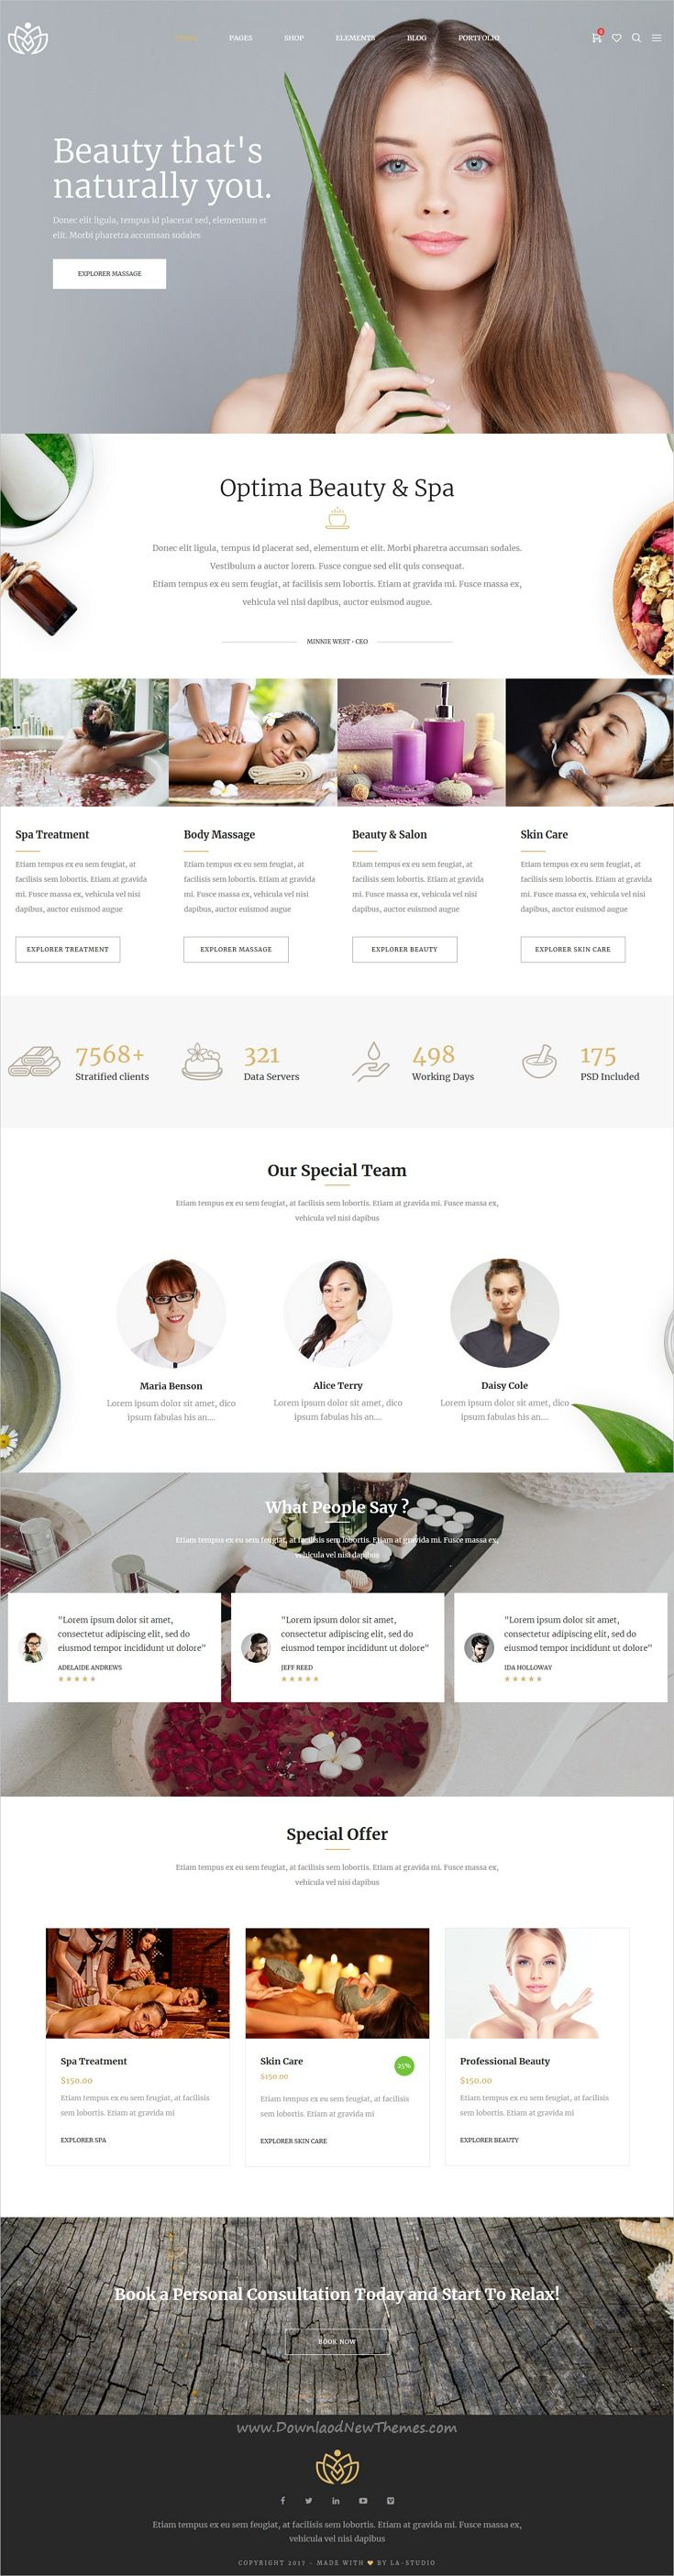 Optemia clean and modern design responsive multipurpose WordPress beauty spa theme with 25+ homepage layouts Unlimited downloads of 340K inspiring and ready-to-use photos, Premium WordPress themes, Plugins, templates, fonts and assets; subscribe for a single monthly fee